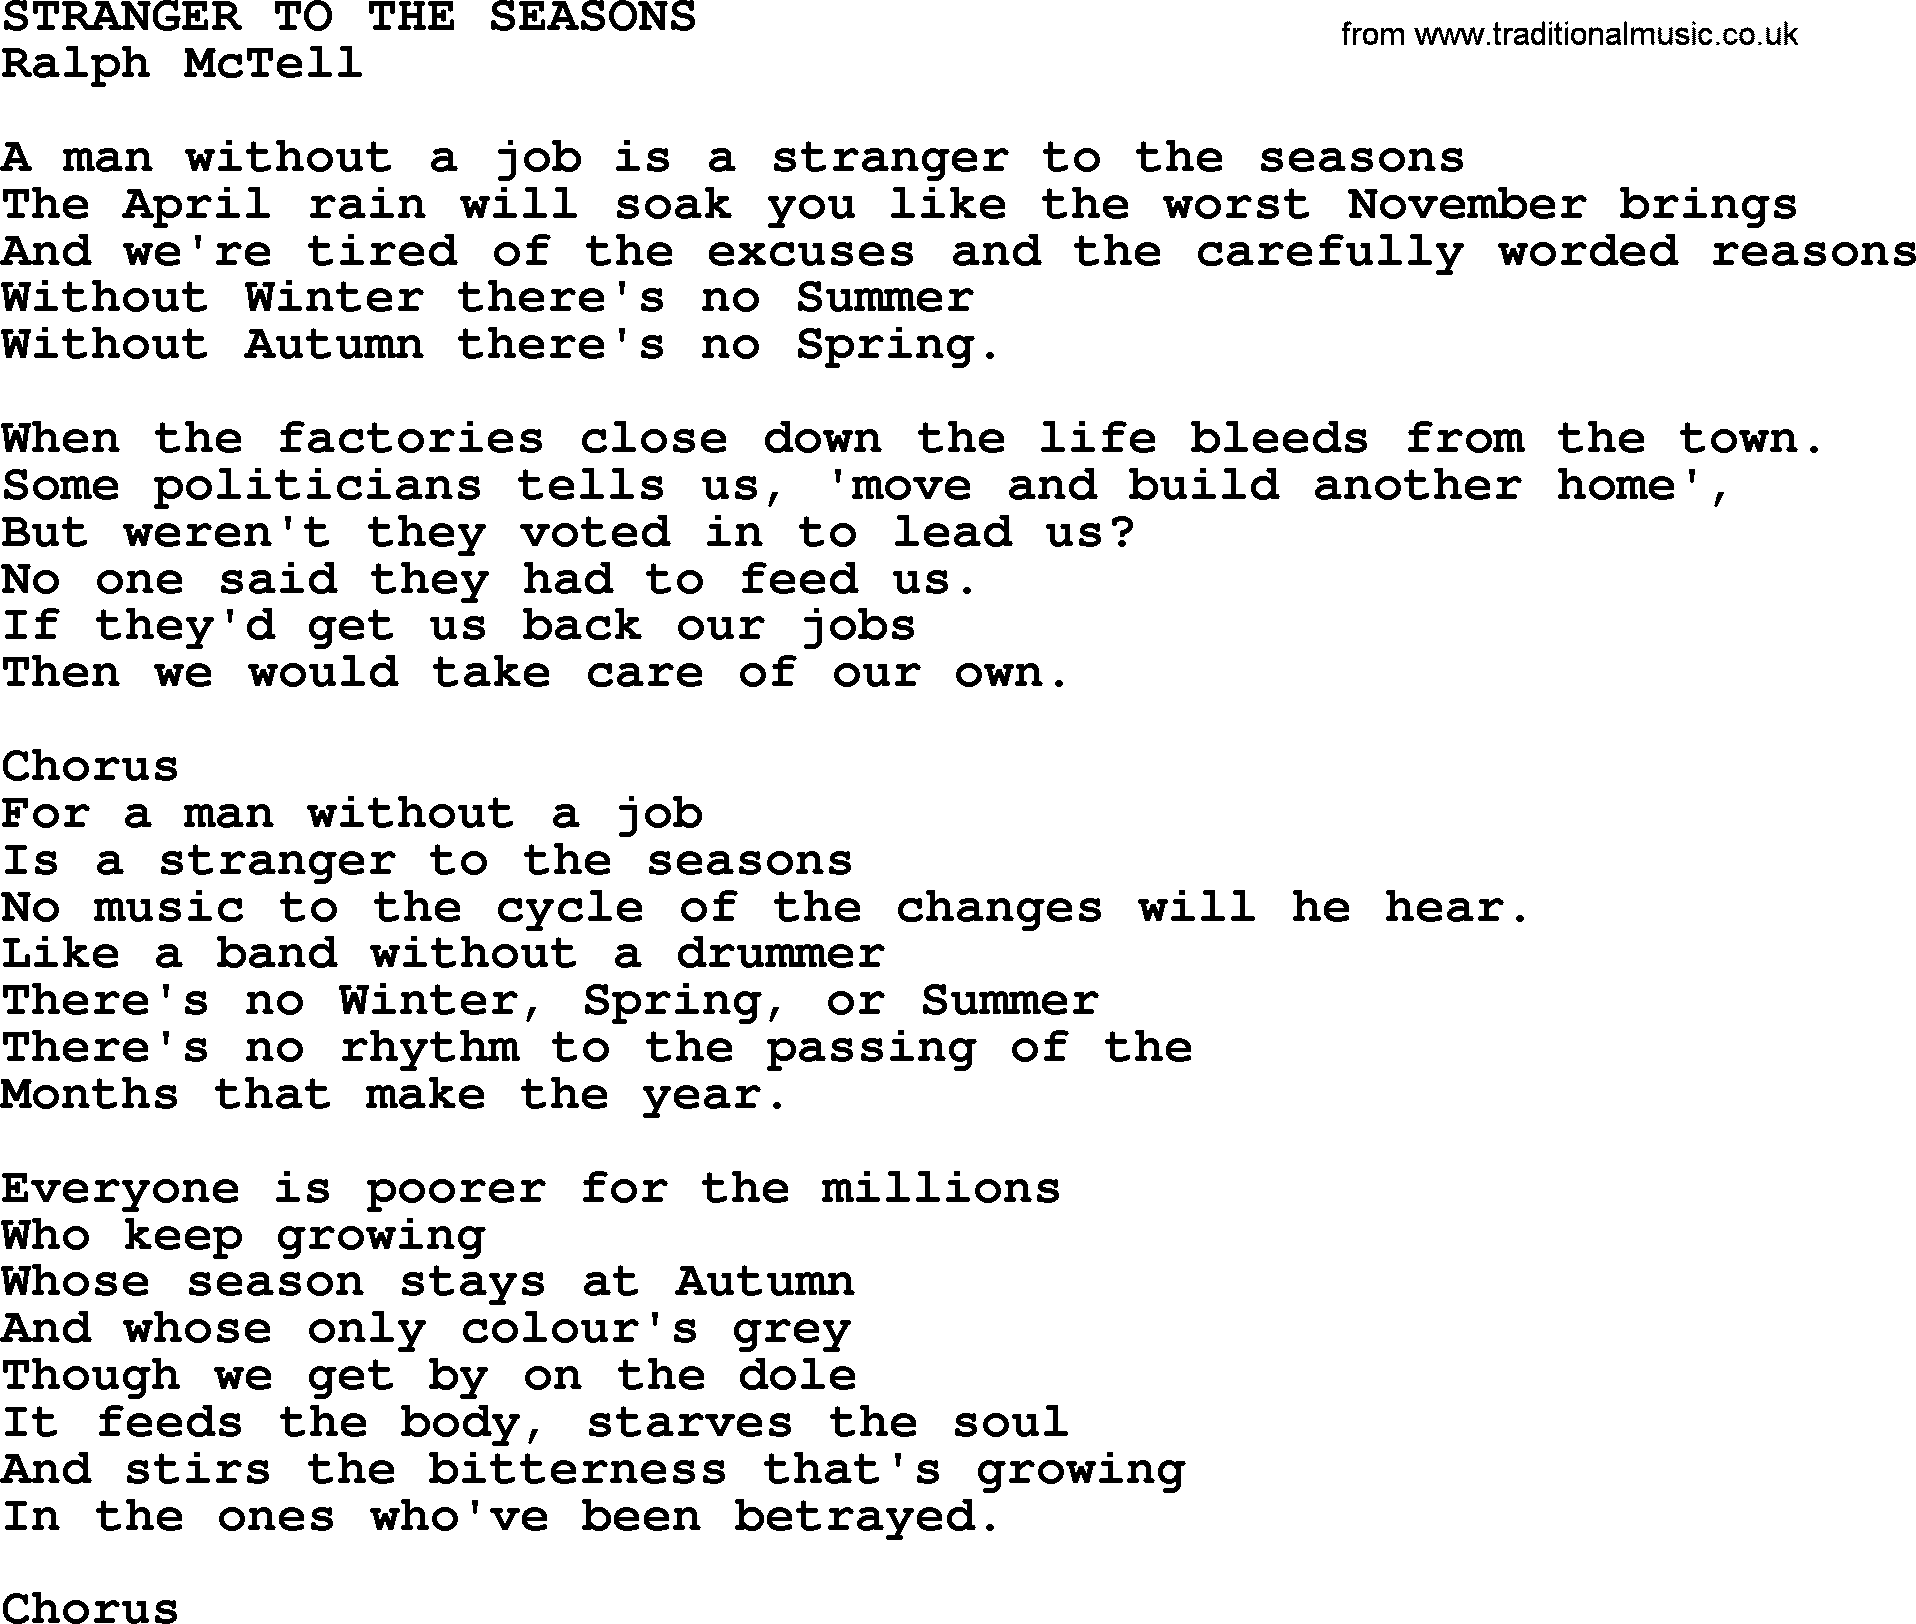 Stranger To The Seasons txt - by Ralph McTell lyrics and chords